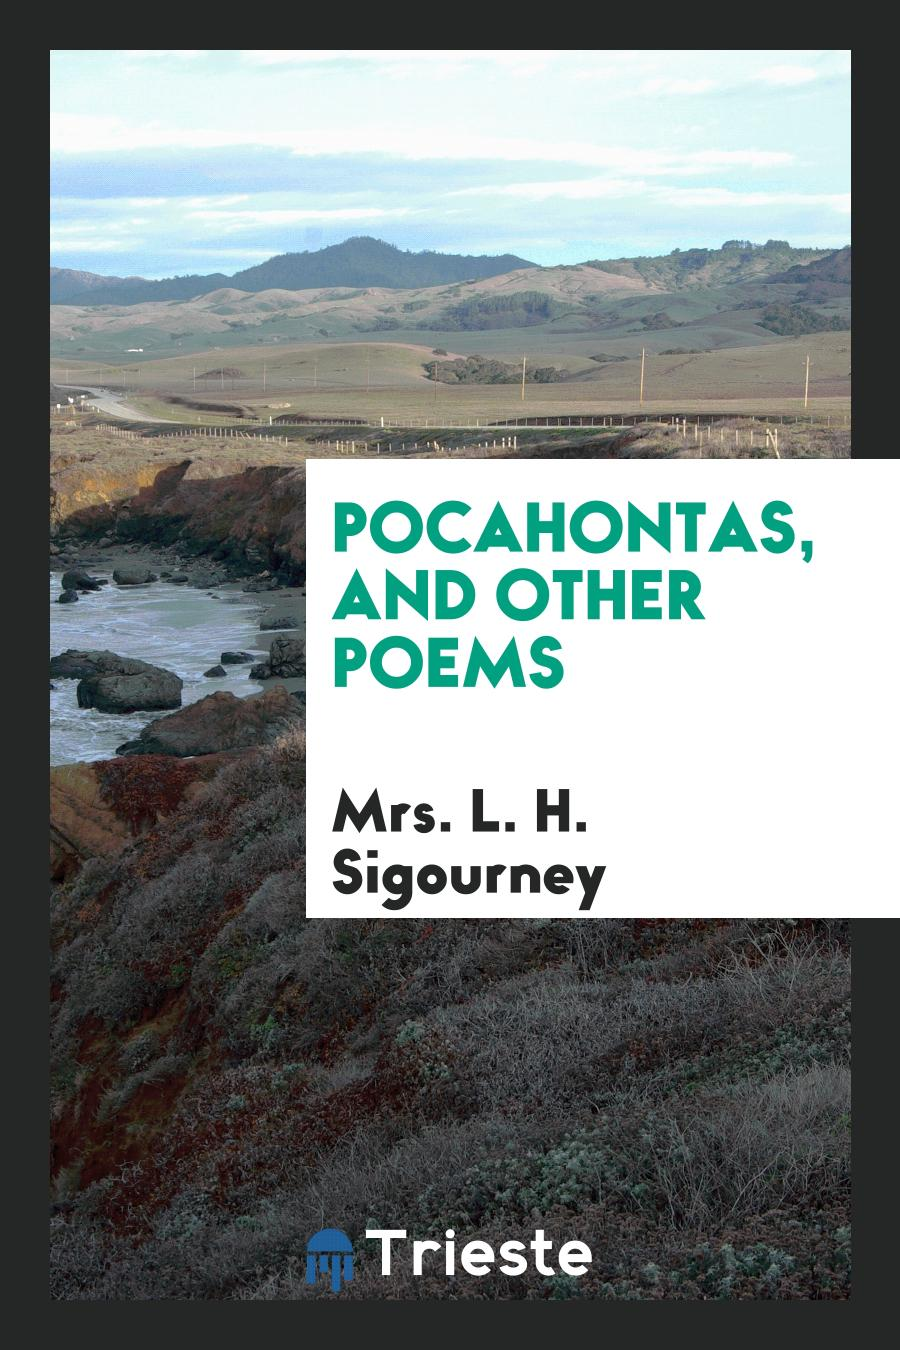 Pocahontas, and Other Poems